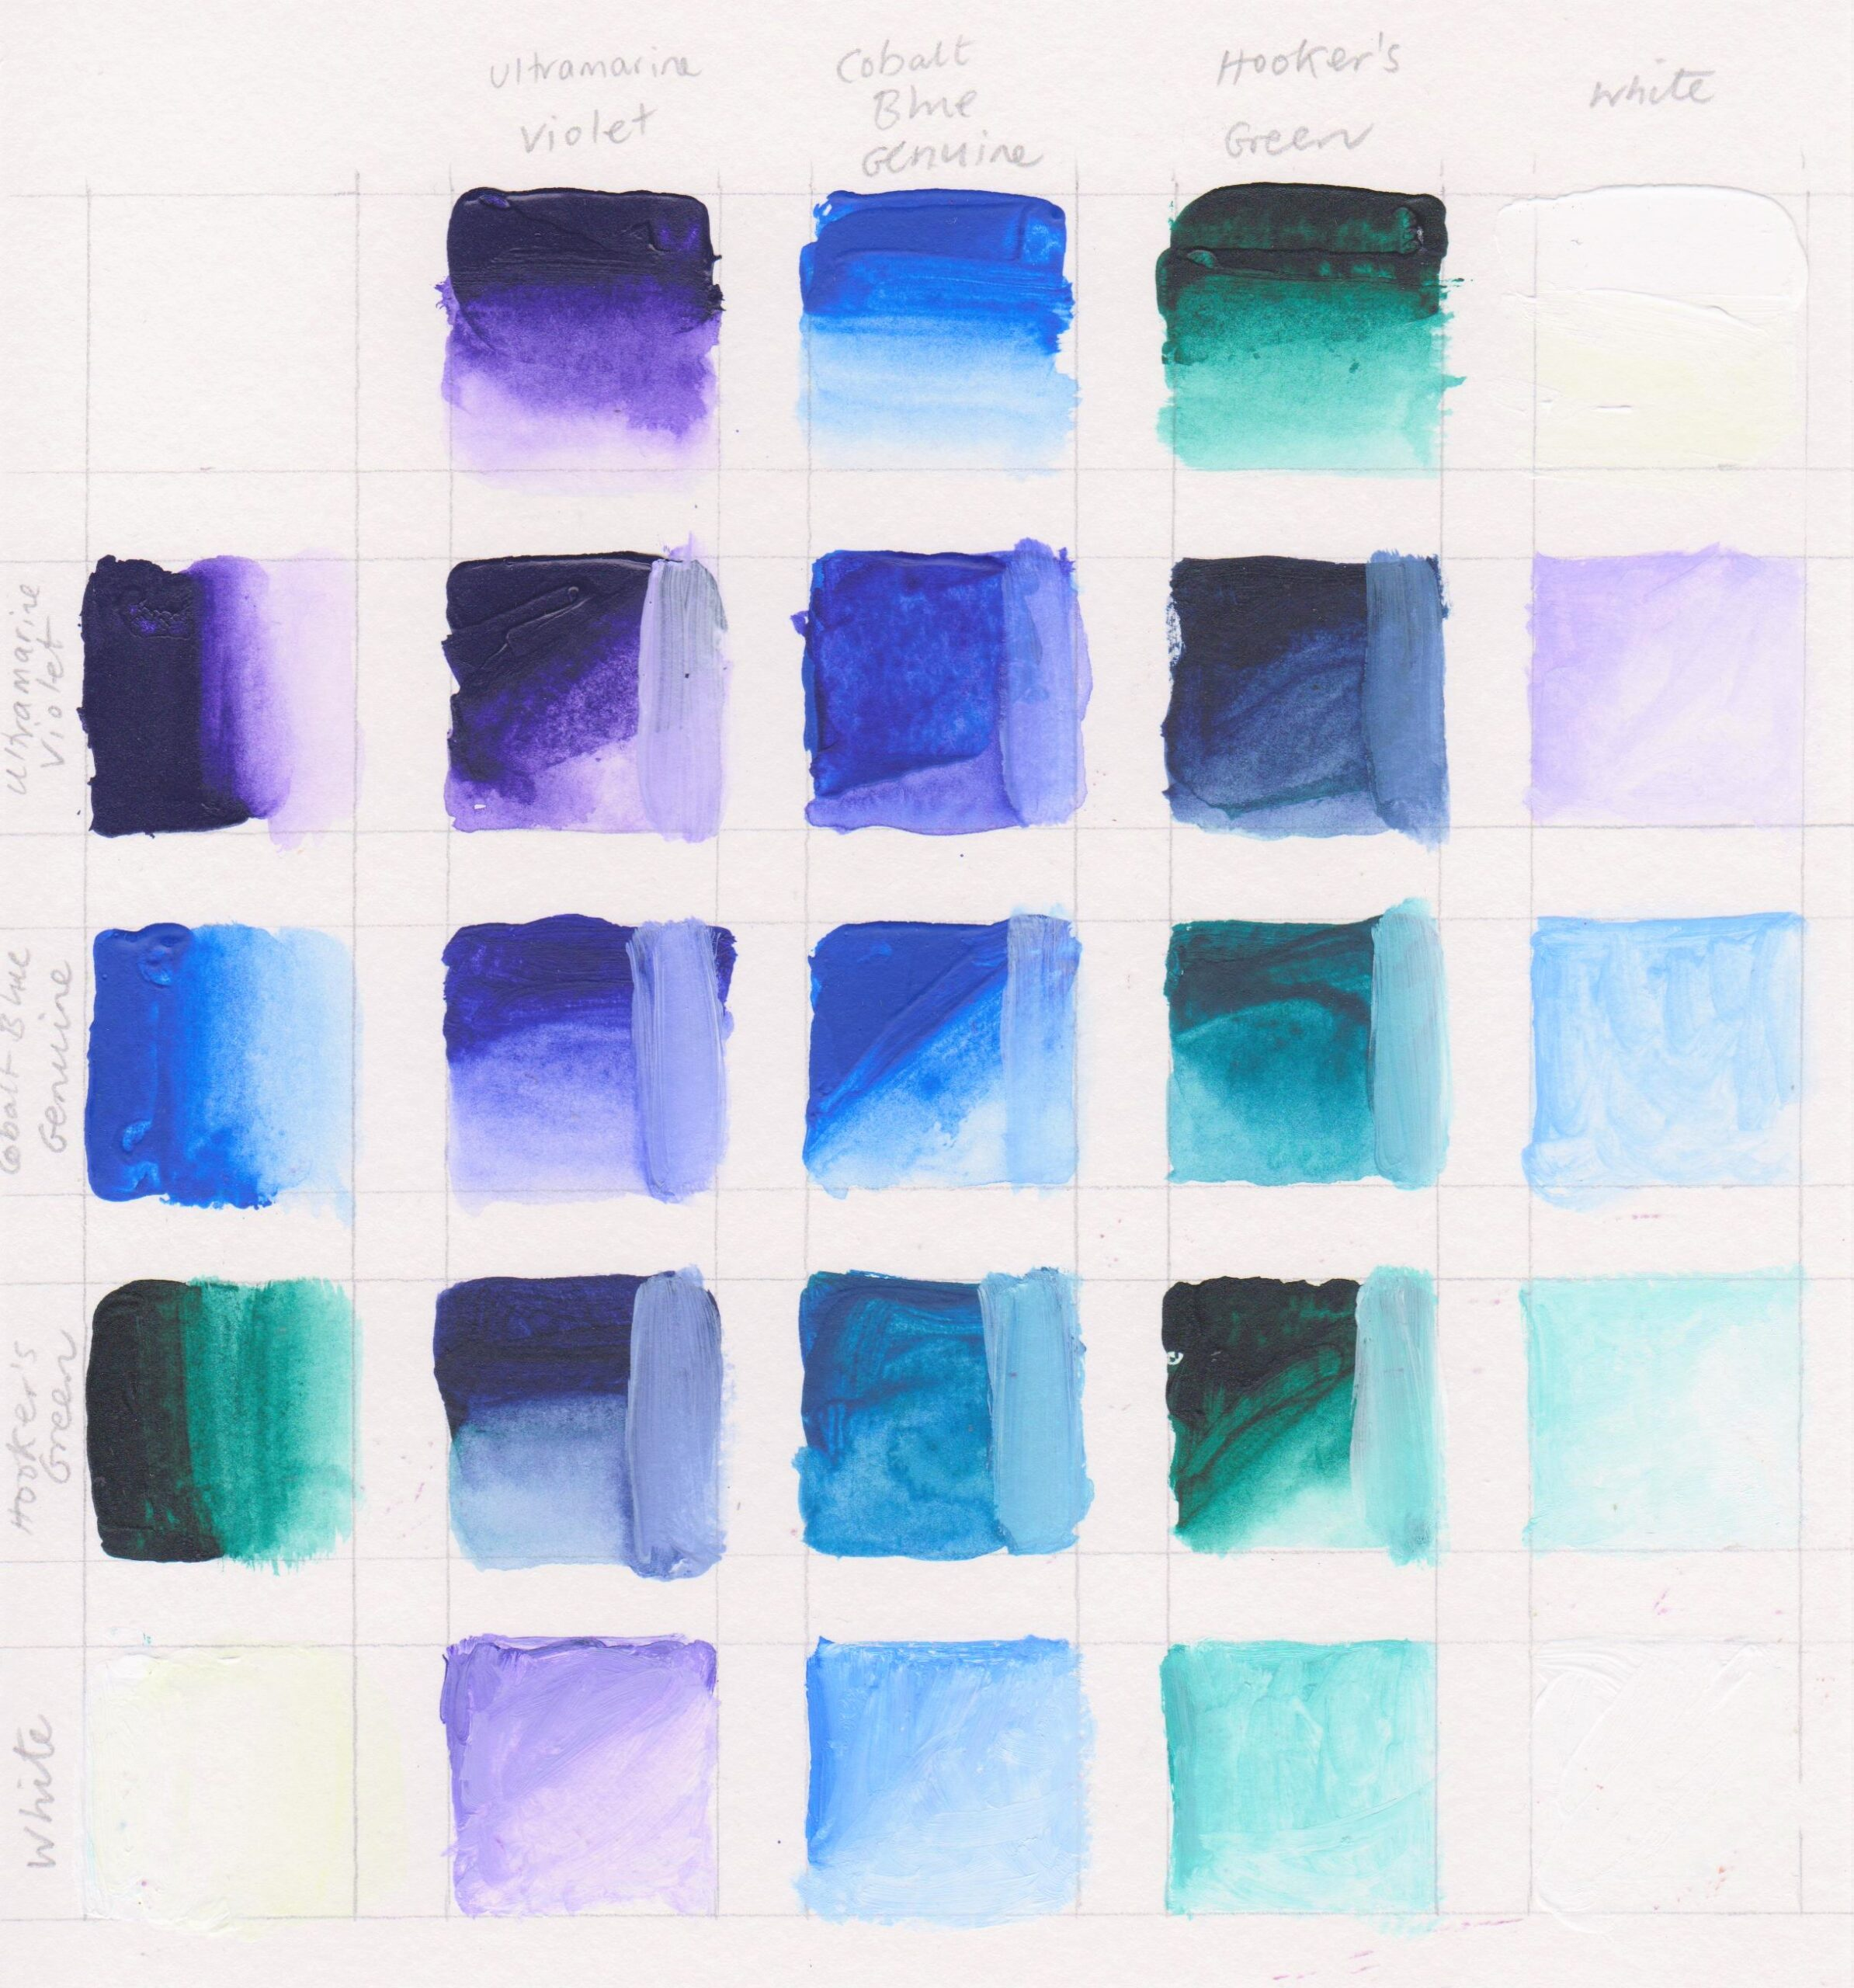 The top row (the x axis) and the far left column (the y axis) show the colours of my limited palette in their unmixed state - where the colour appears darkest is how the colour appears from the tube, I then thinned each colour out with a little water in the rest of the square. Each colour on the x axis is mixed with the corresponding y axis colour as you move down the column of squares. The vertical strip in each square is an indication of what happens when white is mixed into the colour mix.